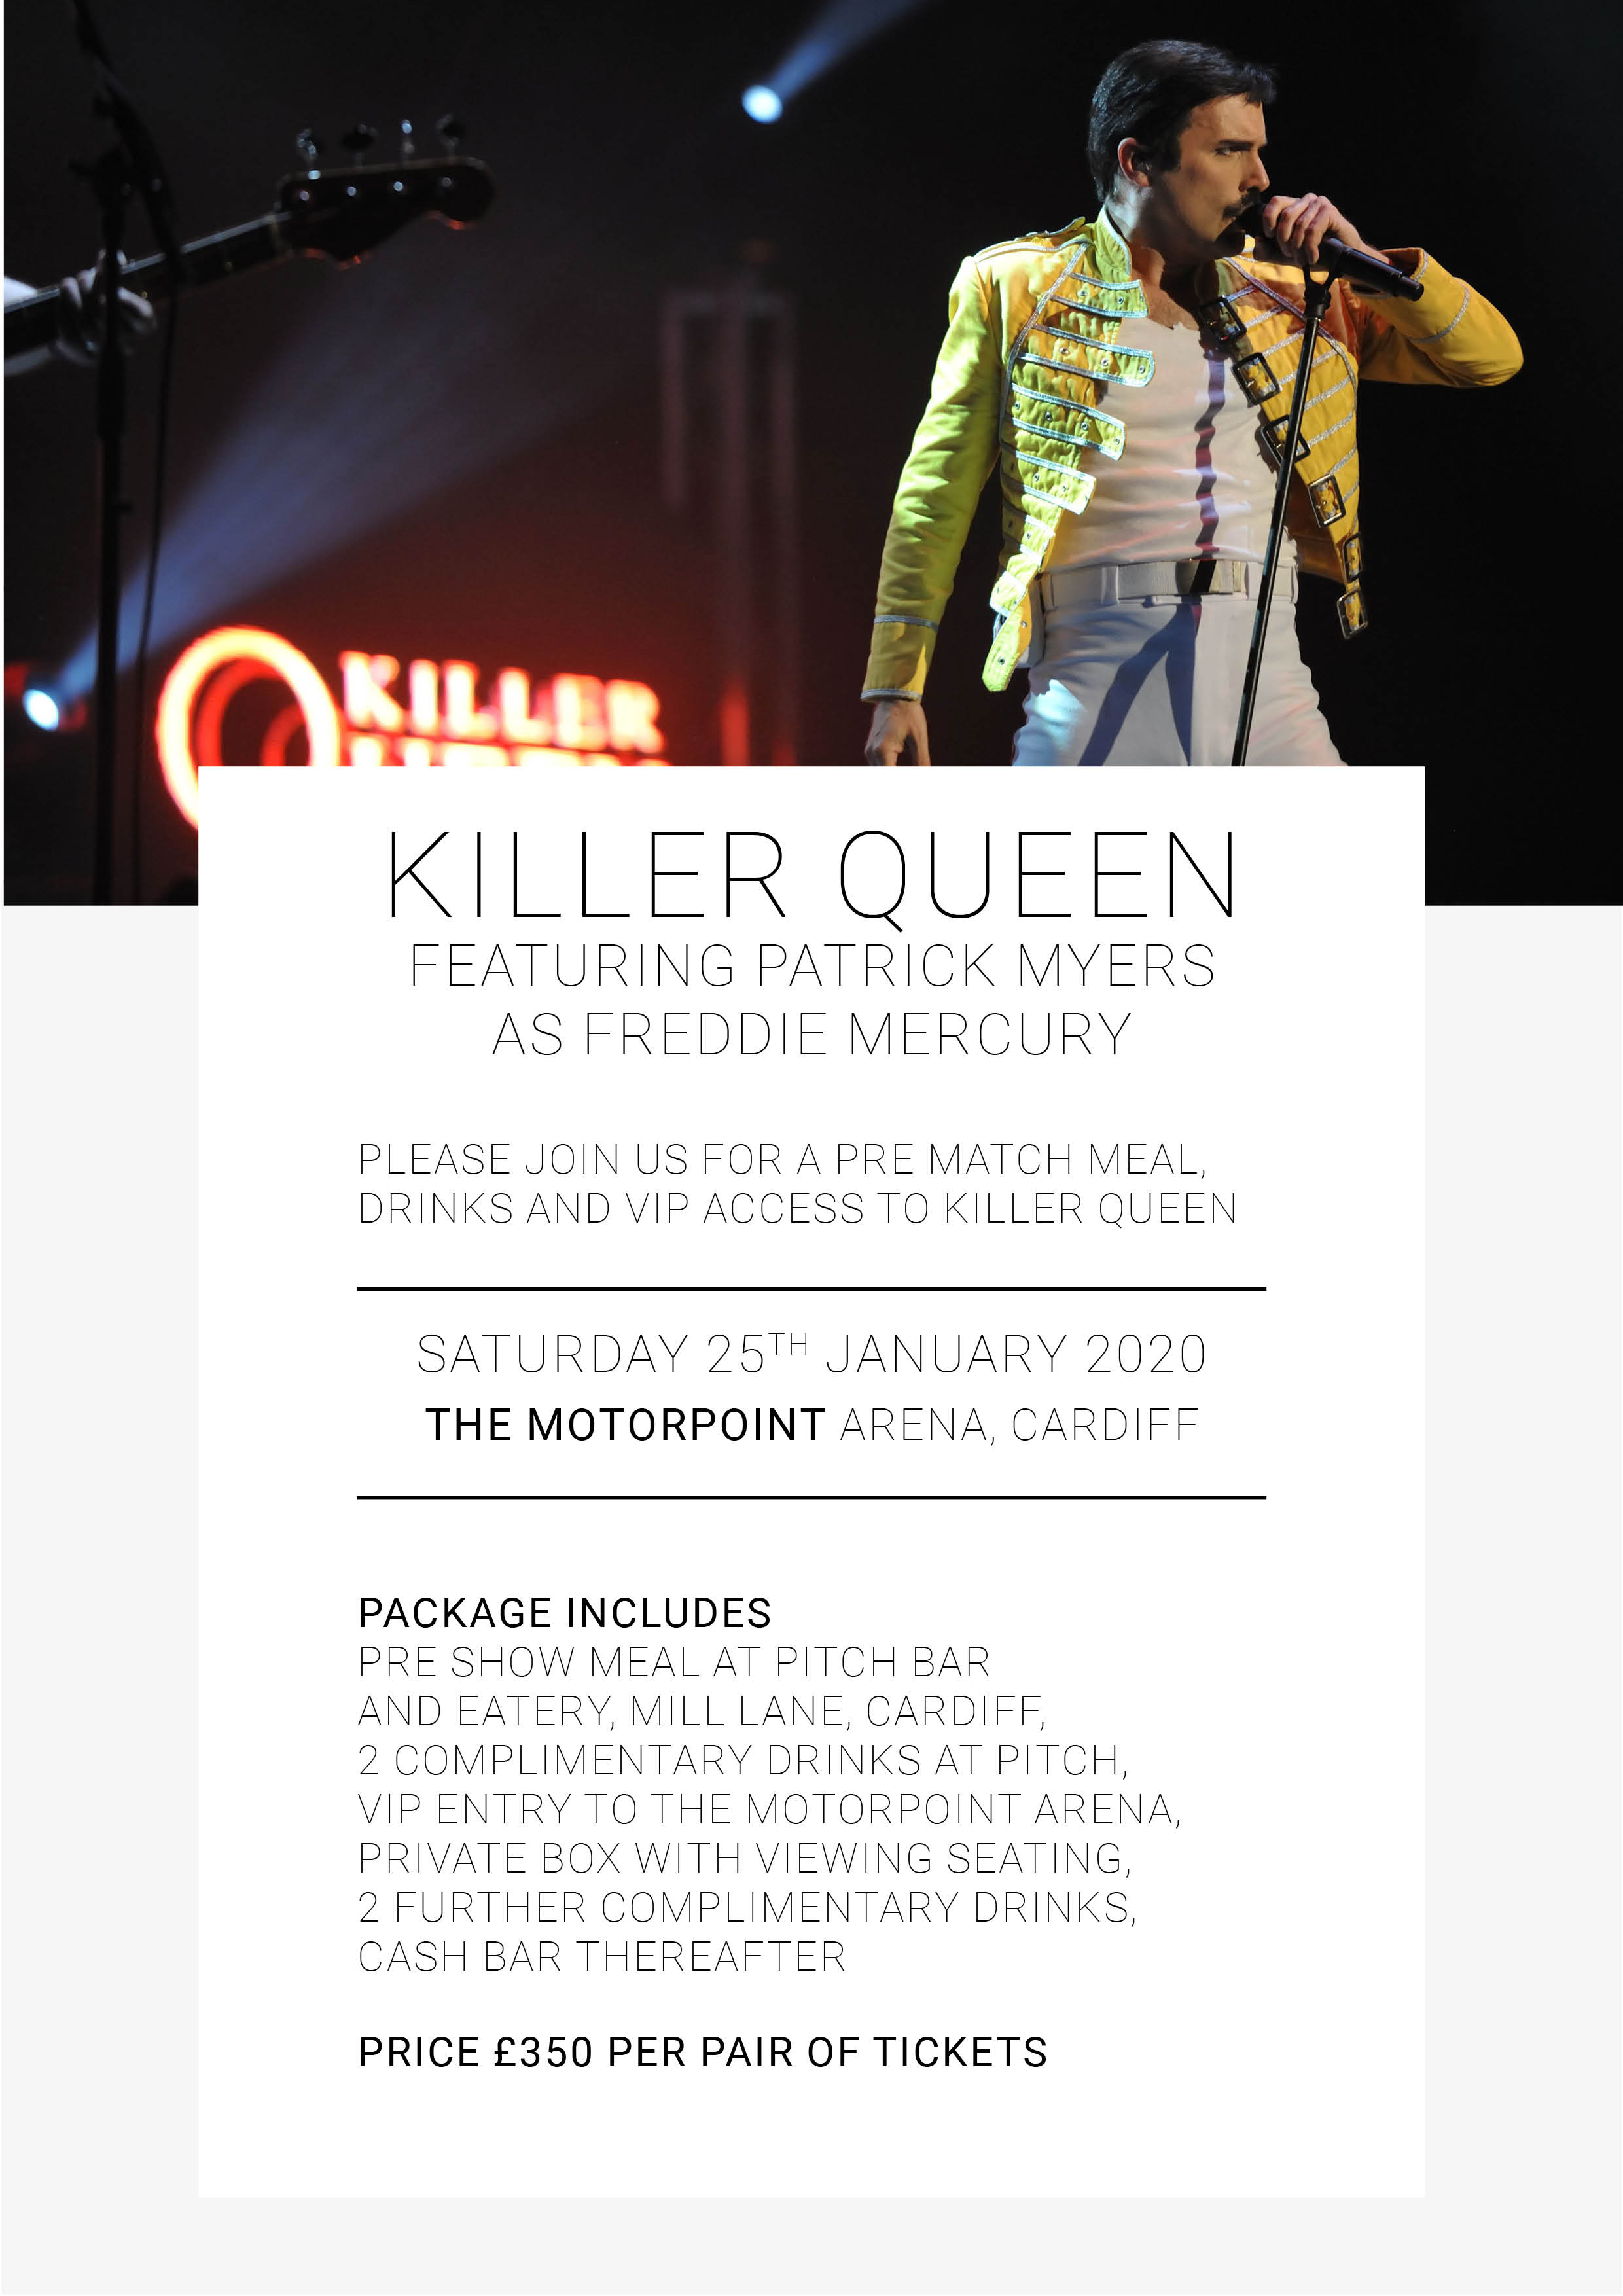 Killer Queen featuring Patrick Myers as Freddie Mercury